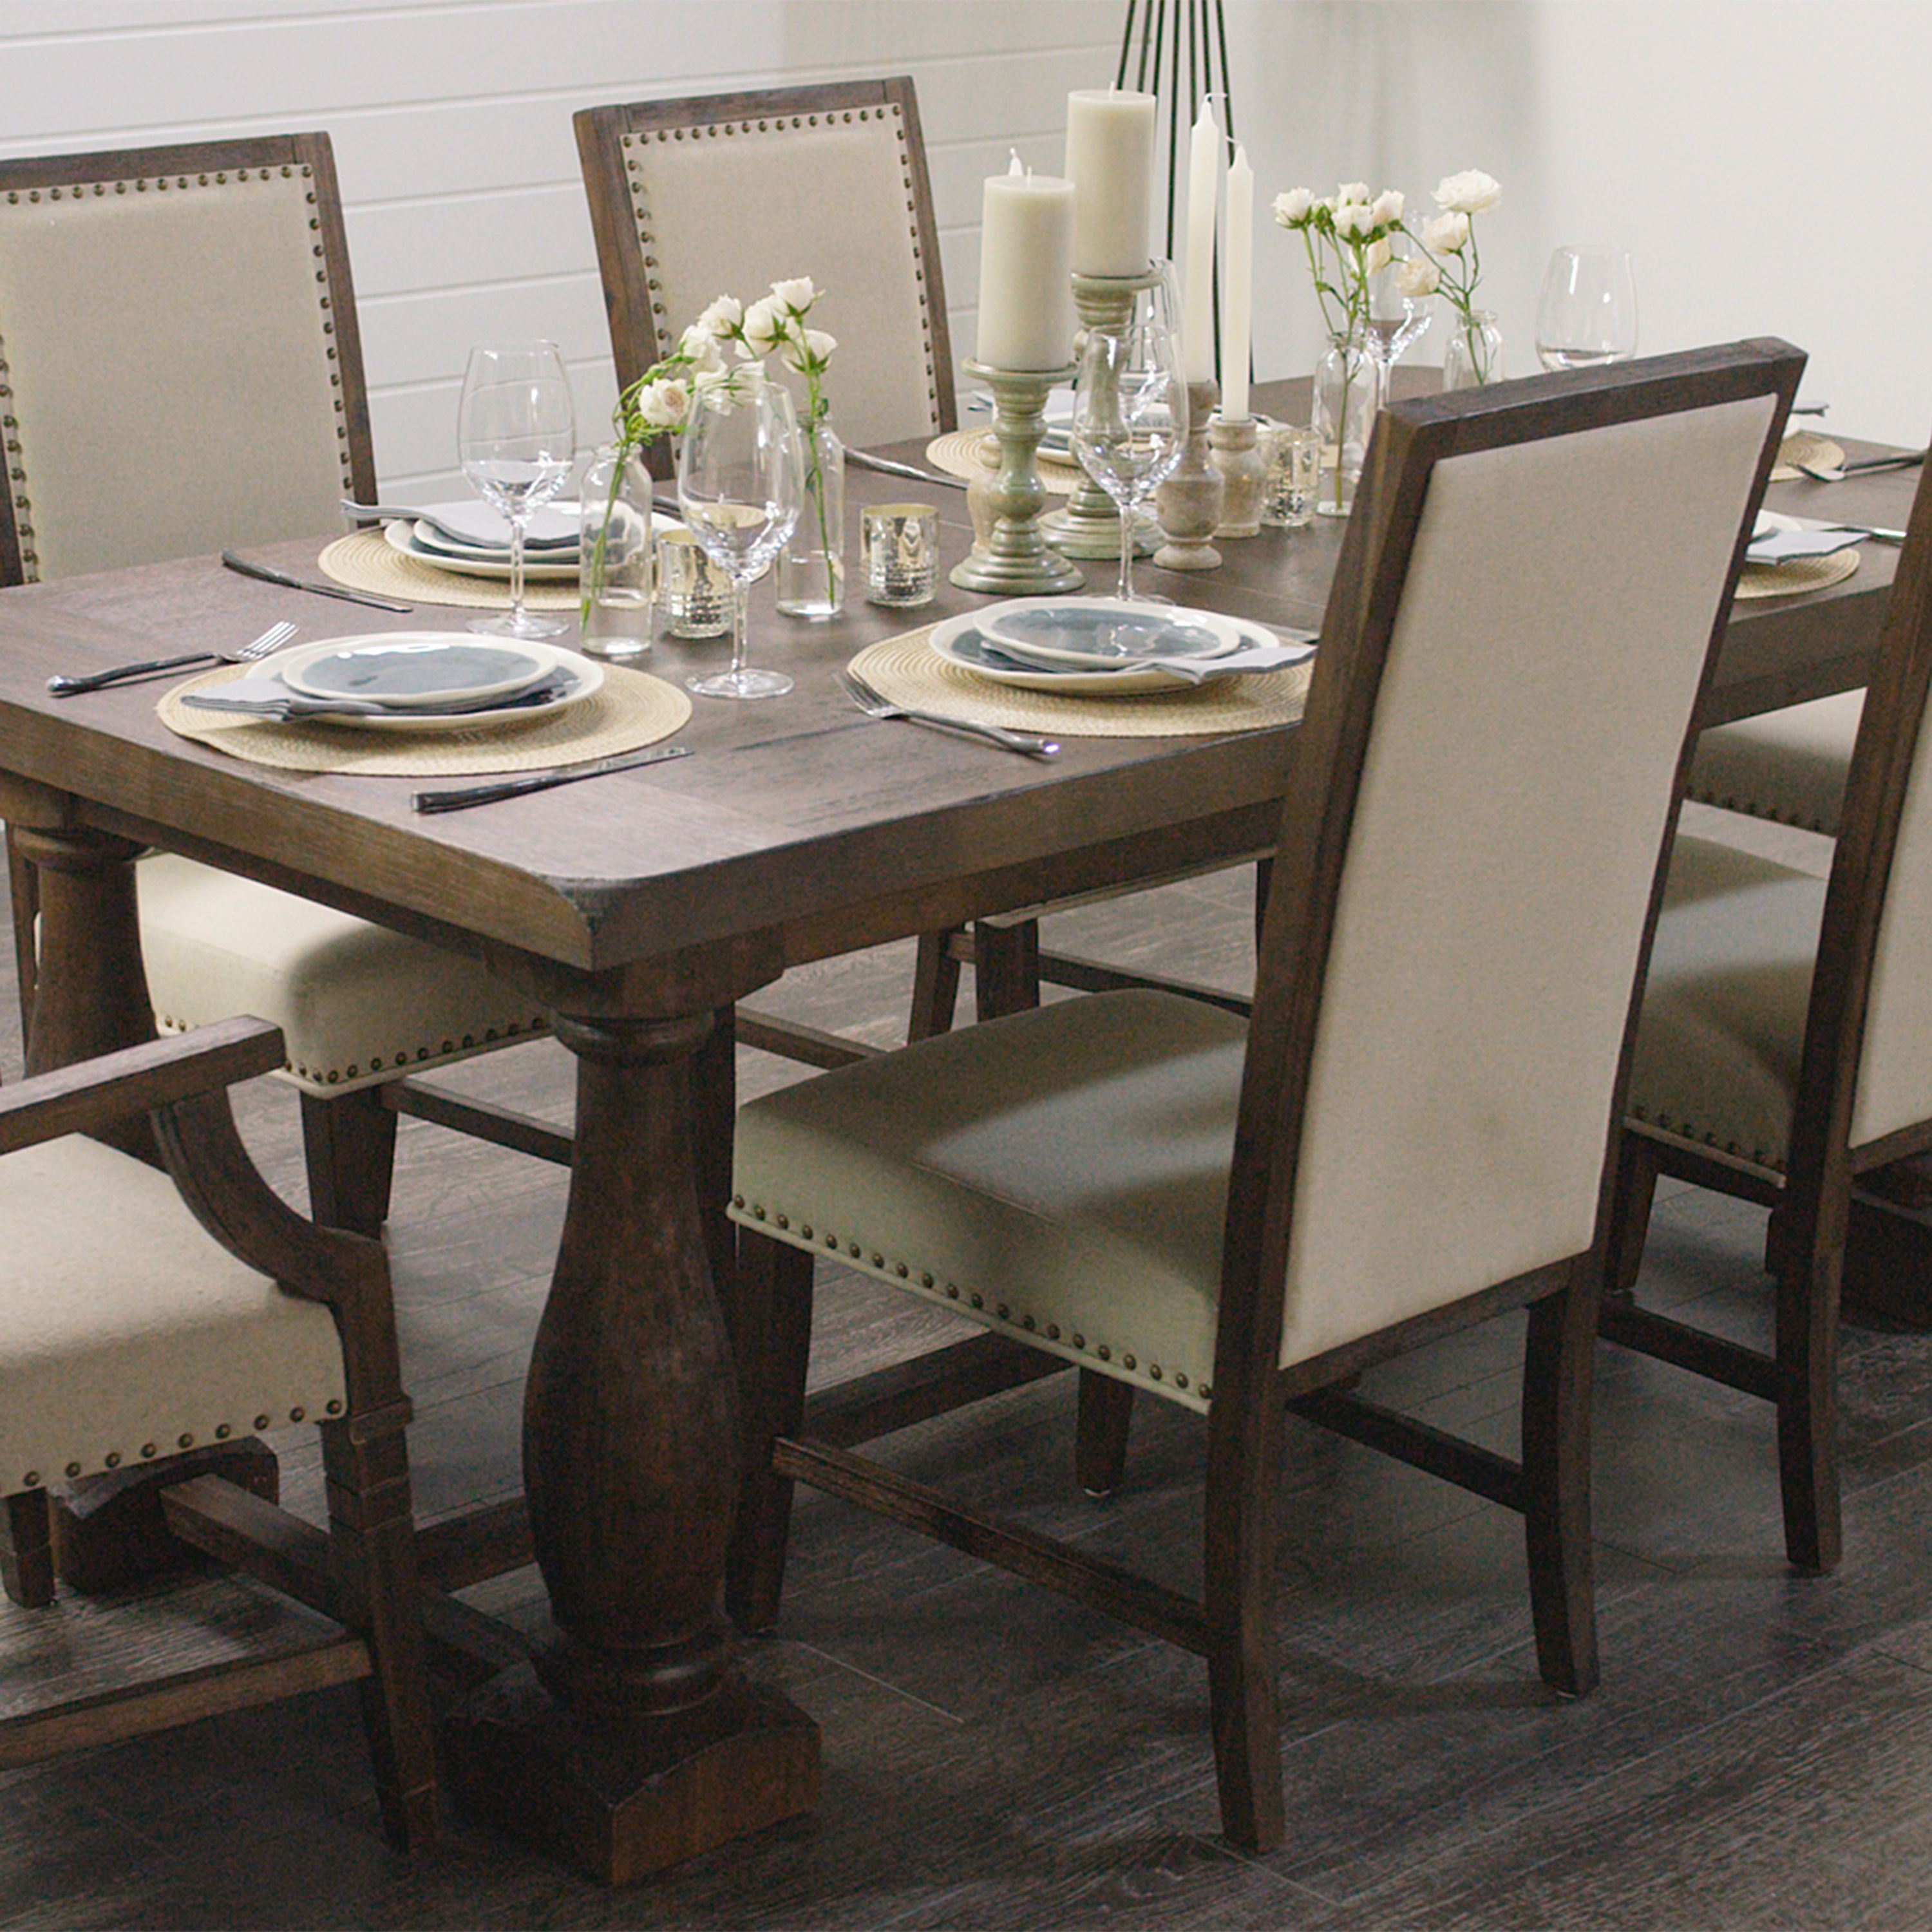 An Extra-large Version Of Our Bestselling Table, Our